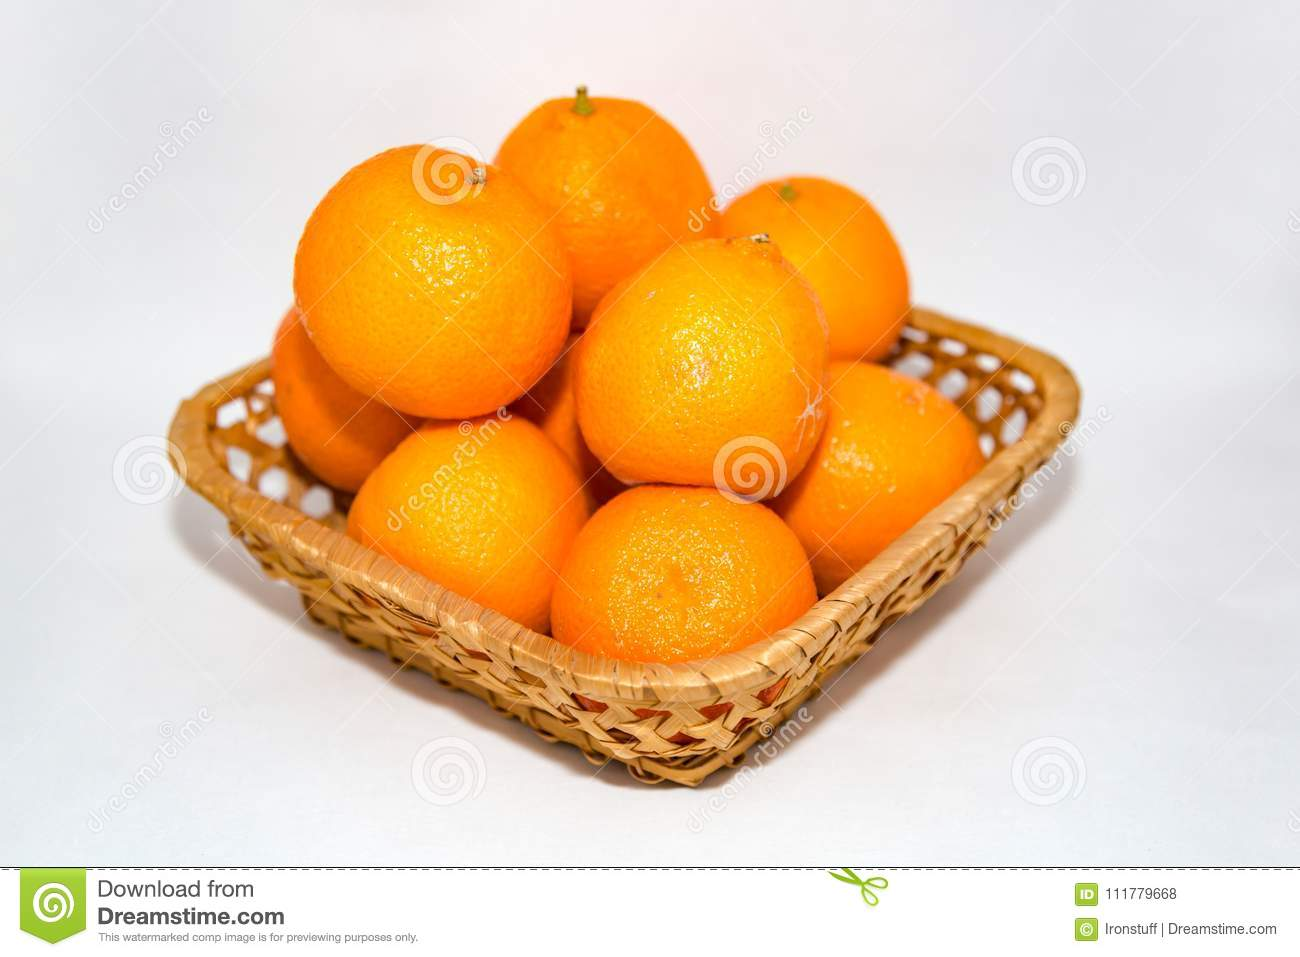 Orange tangerines in a basket